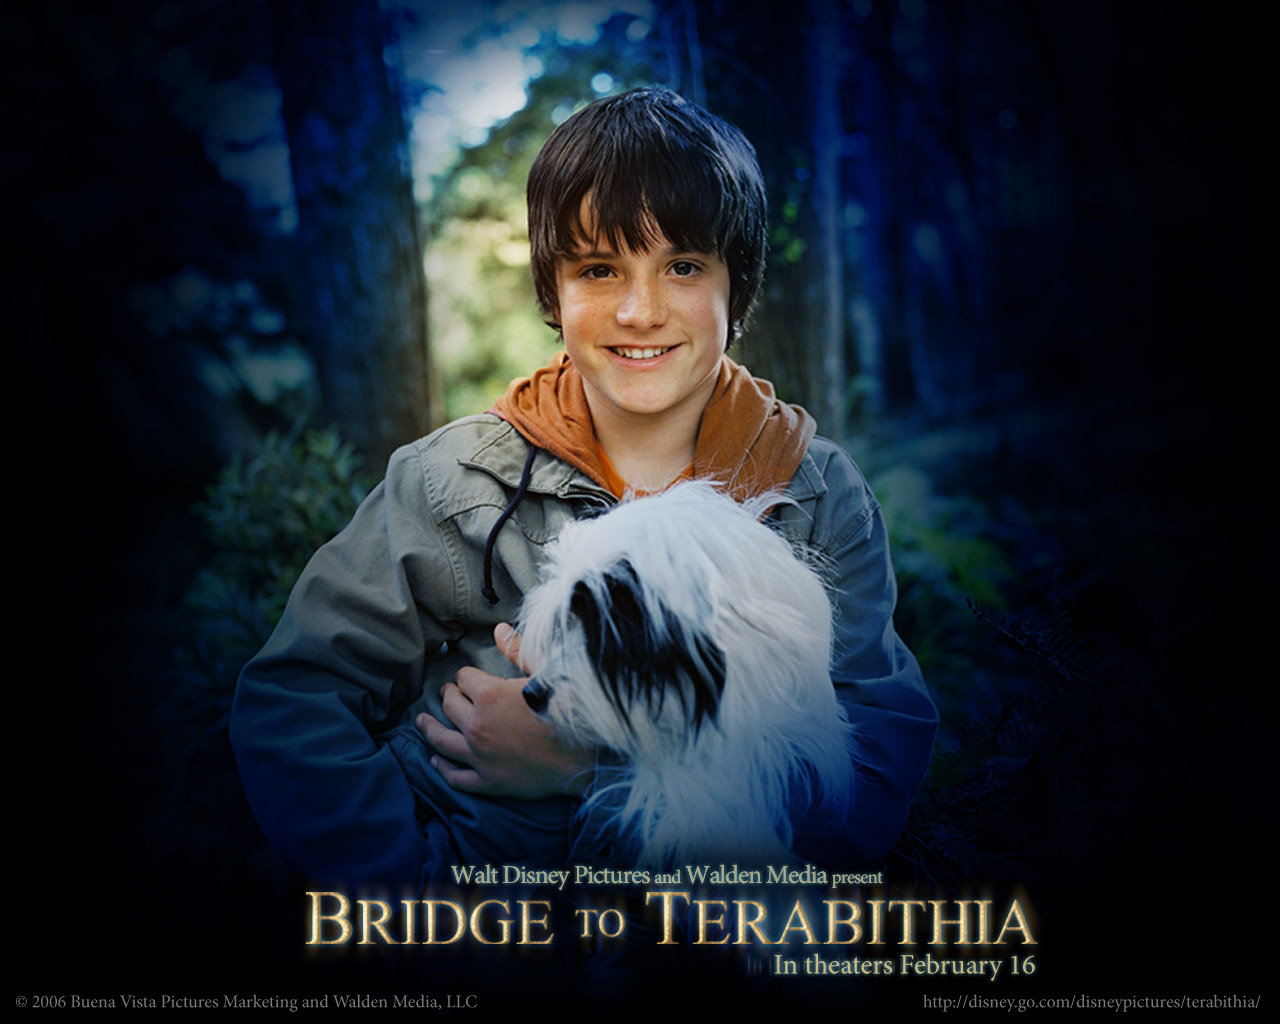 Bridge to terabithia wallpaper wp bridgetoterabithia02 1280 x